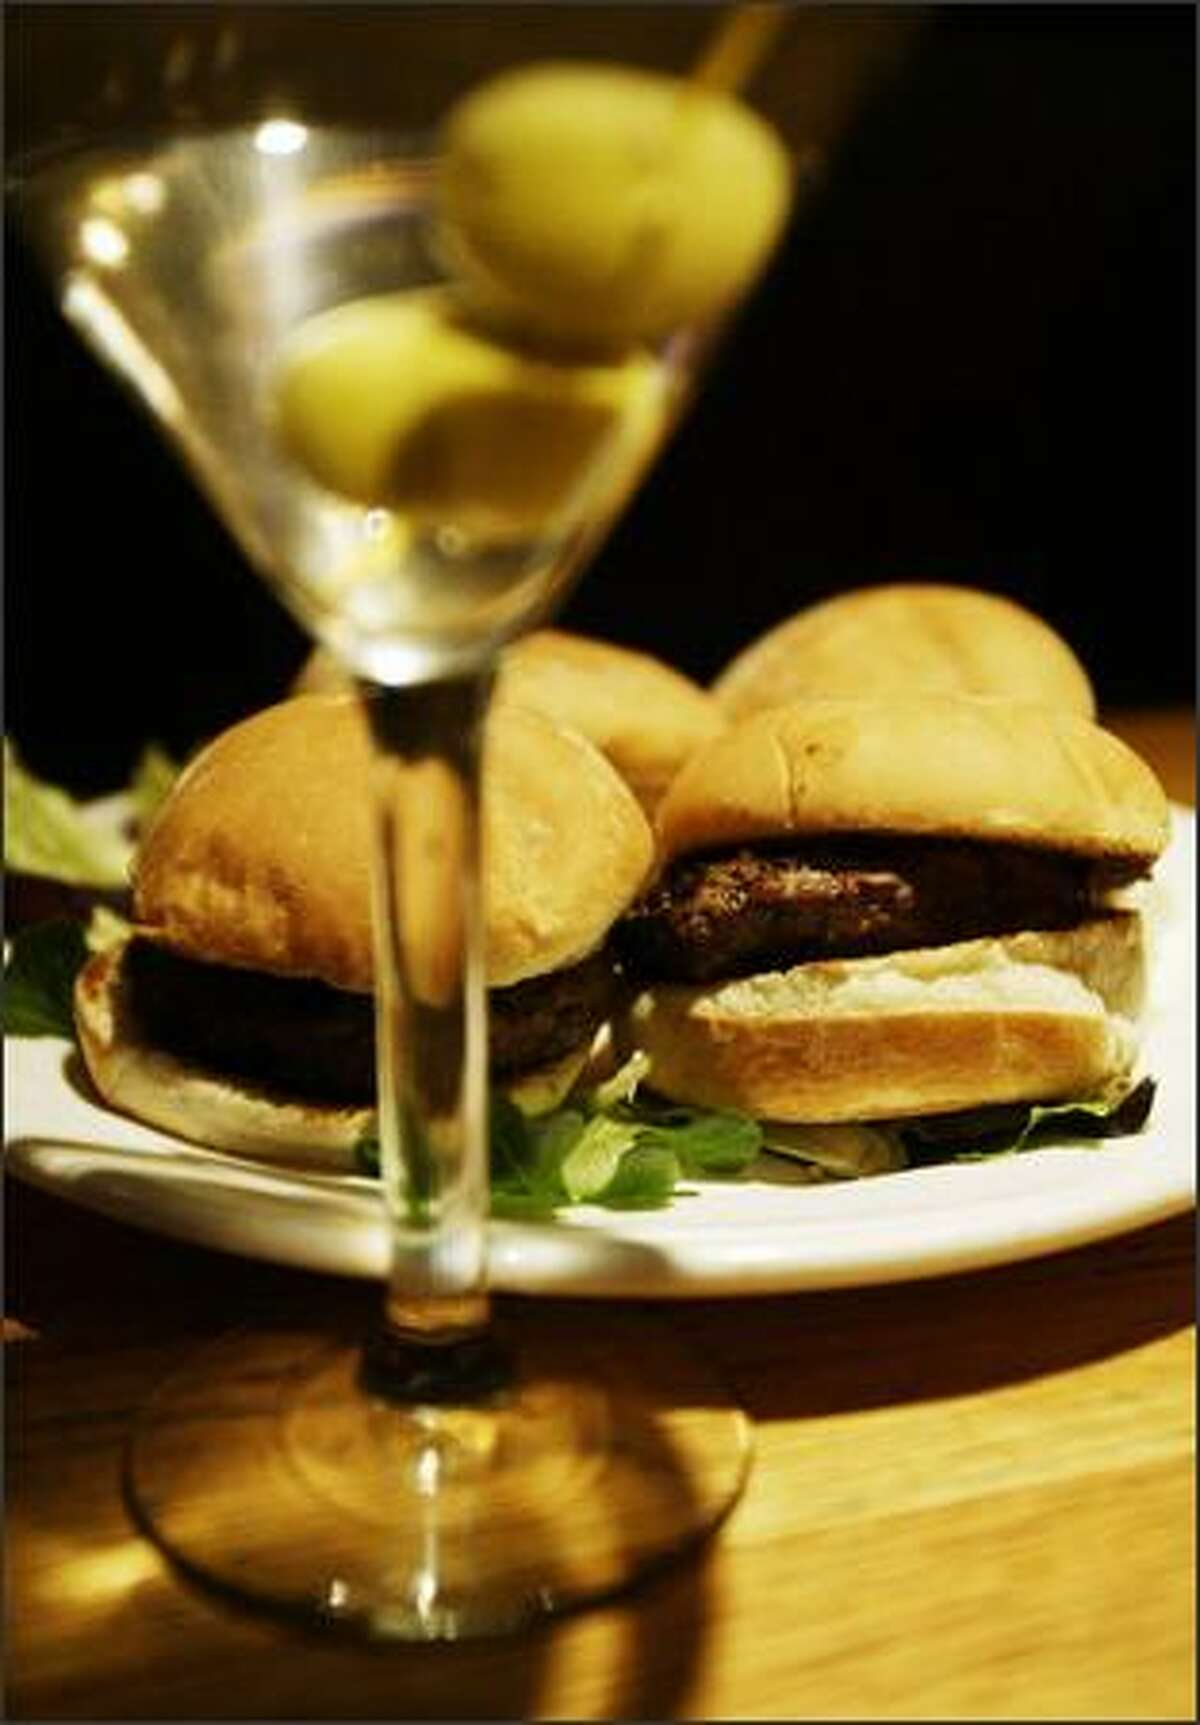 Sliders, or miniburgers, and a martini are great happy hour values.